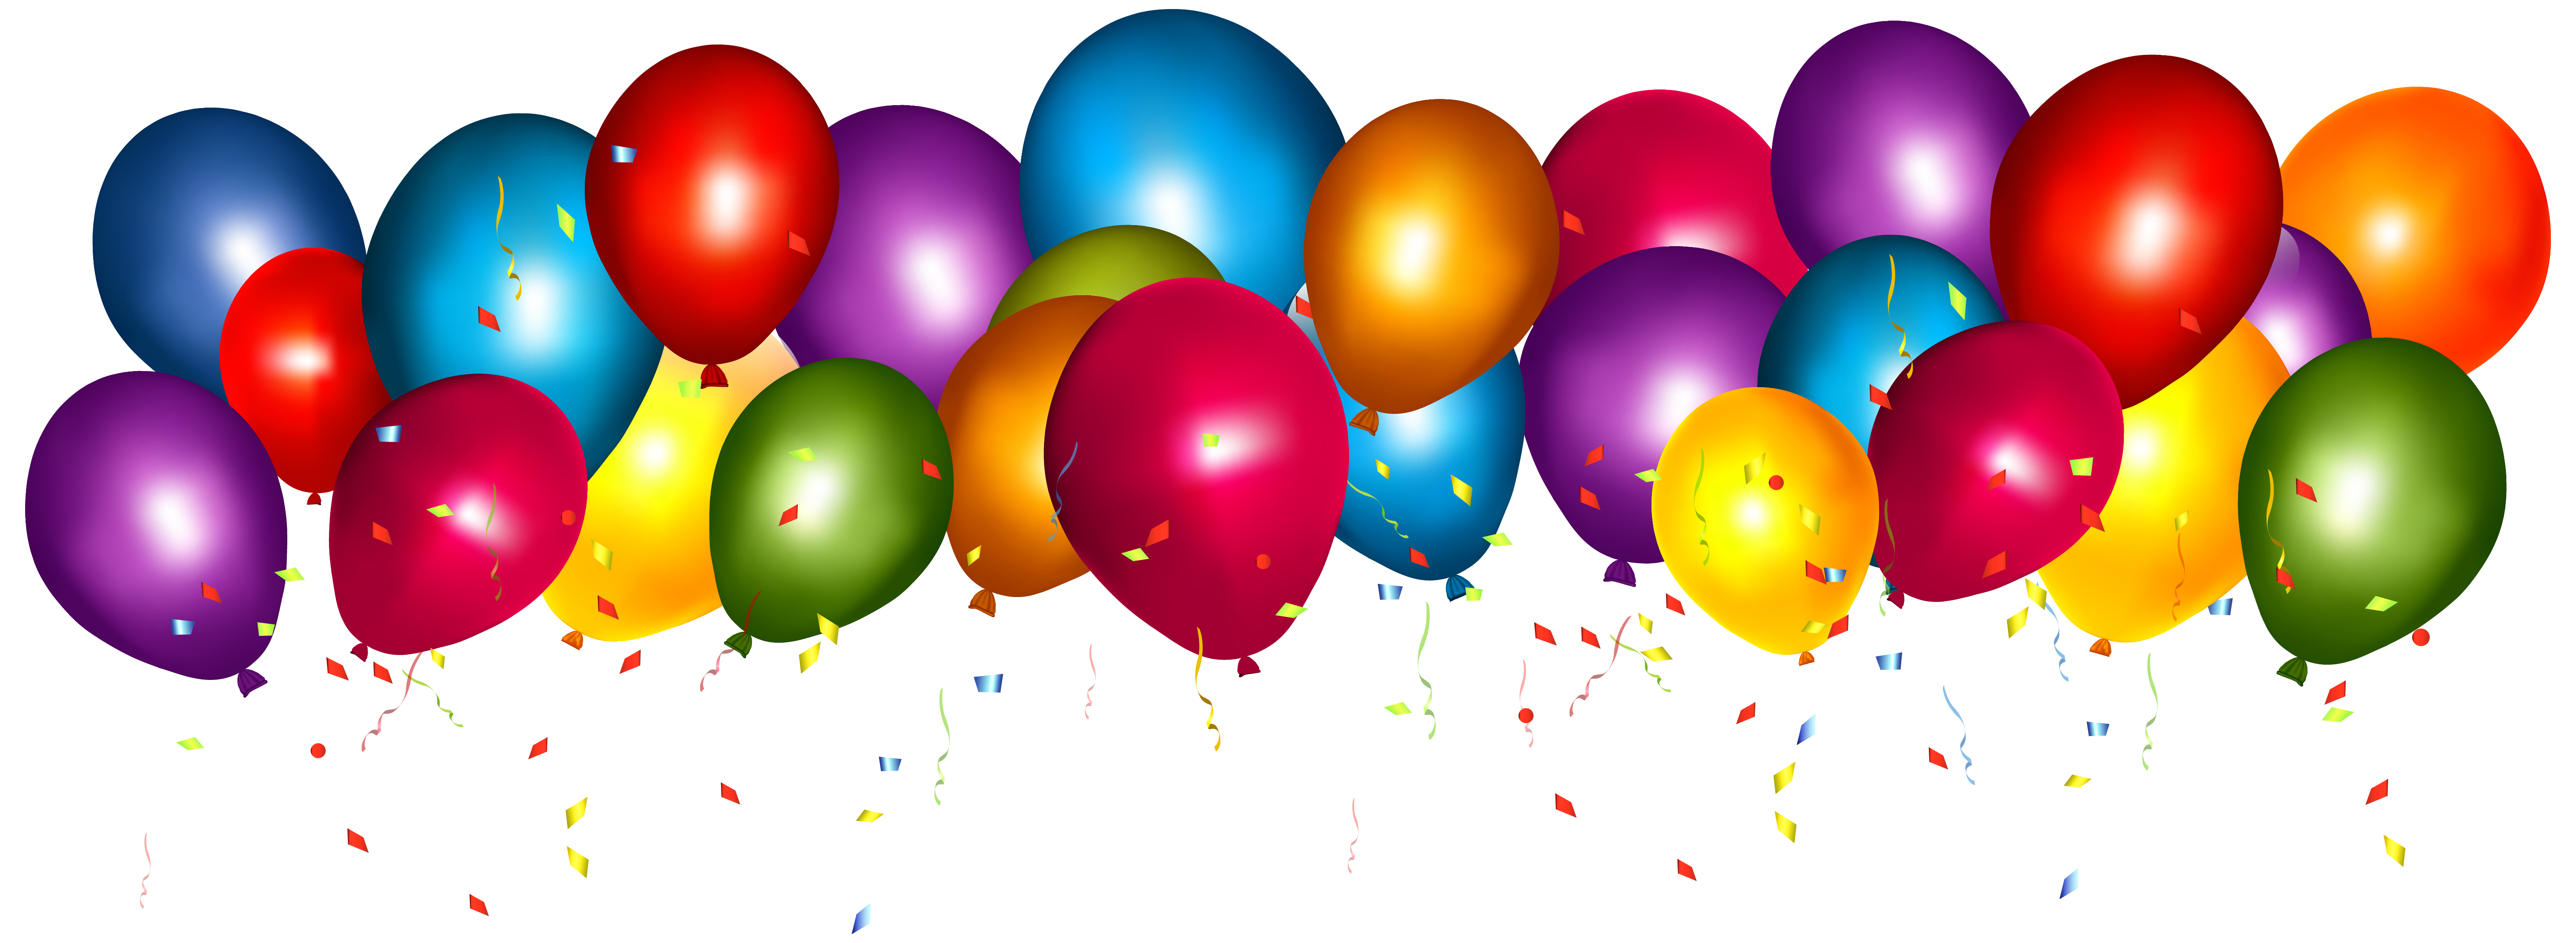 Confeti globos png. Transparent colorful balloons with